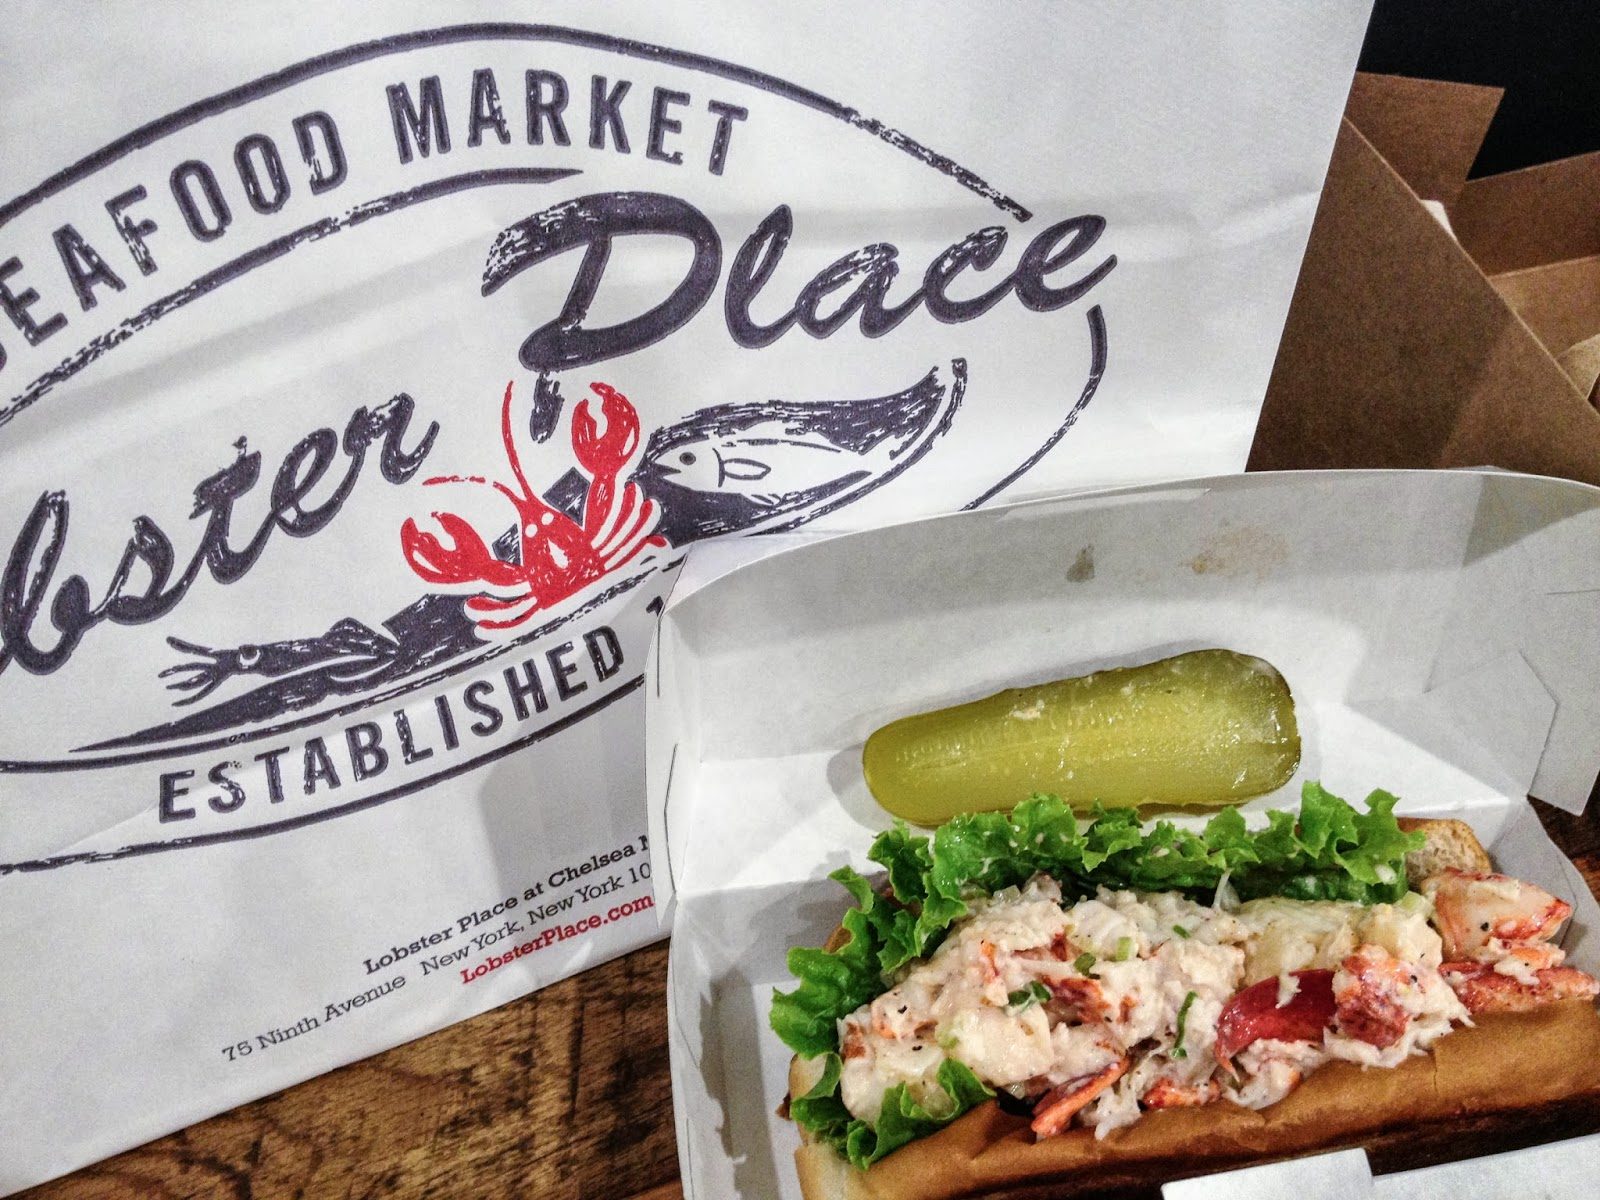 lobster roll, lobster, chelsea market place, lobster meal, seafood, what to eat in chelsea, new york food